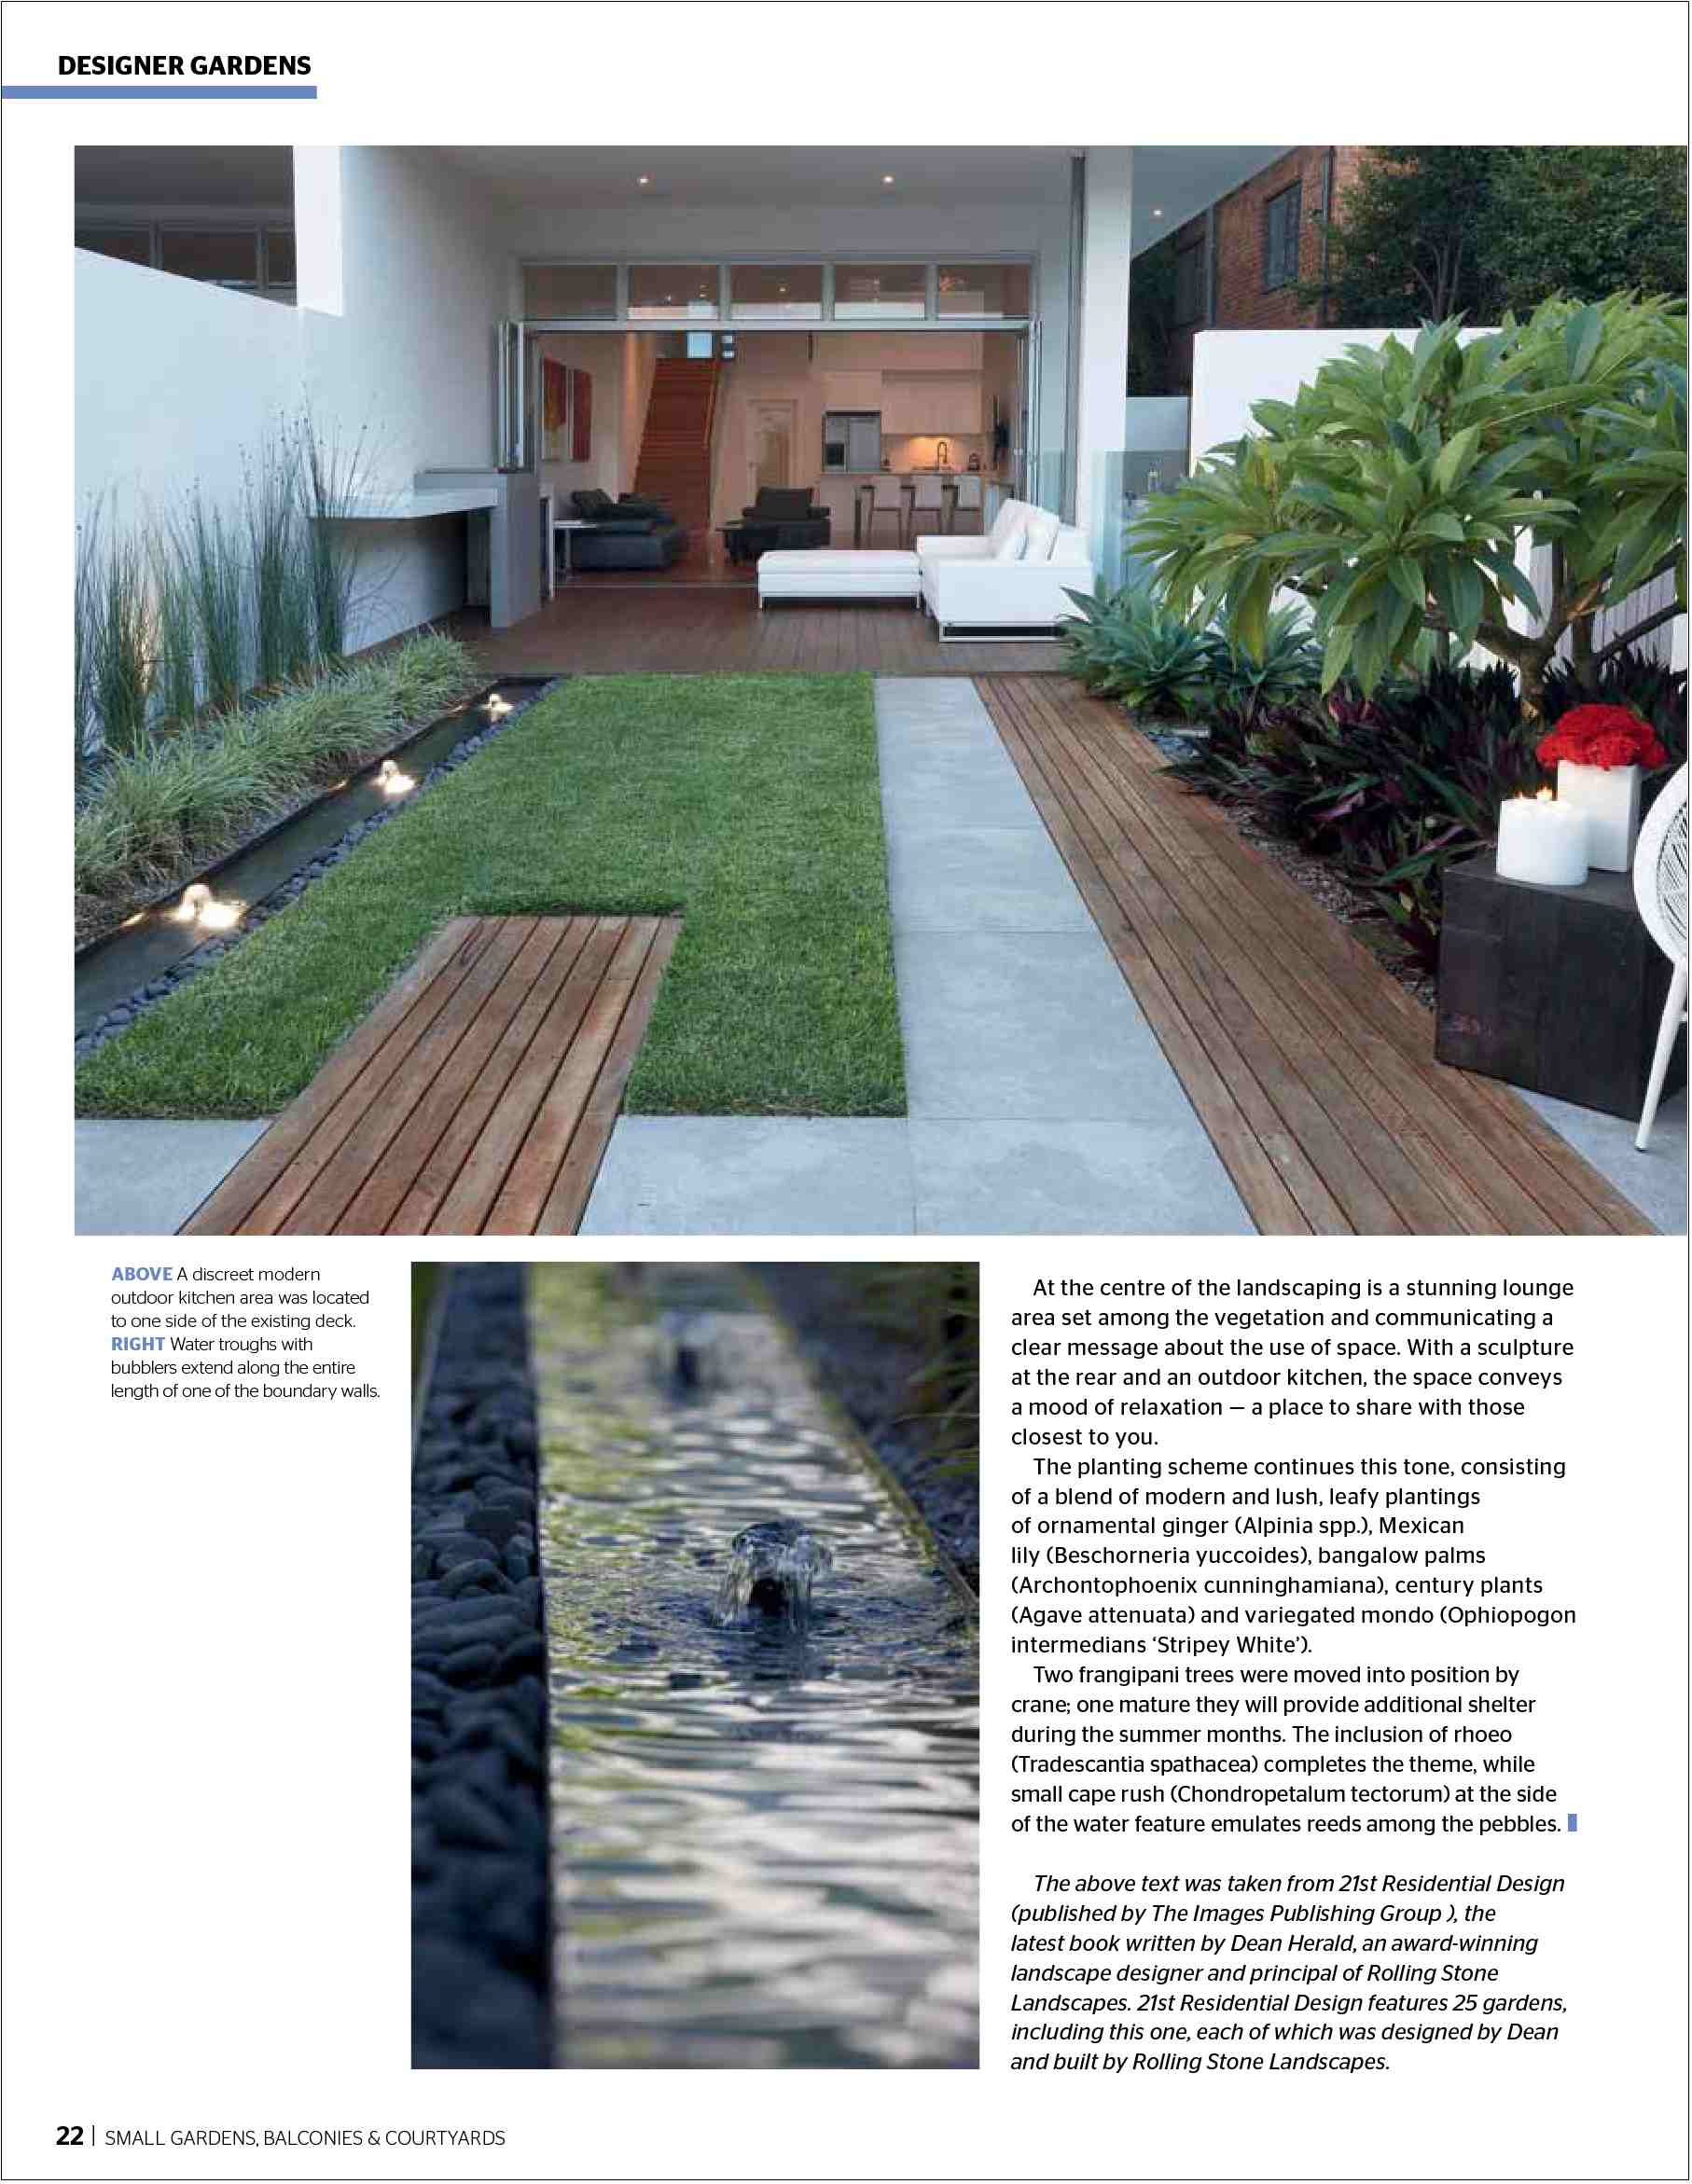 Media Publication Backyard Garden Design Ideas Small Gardens for 15 Awesome Concepts of How to Make Design Ideas For Small Backyards